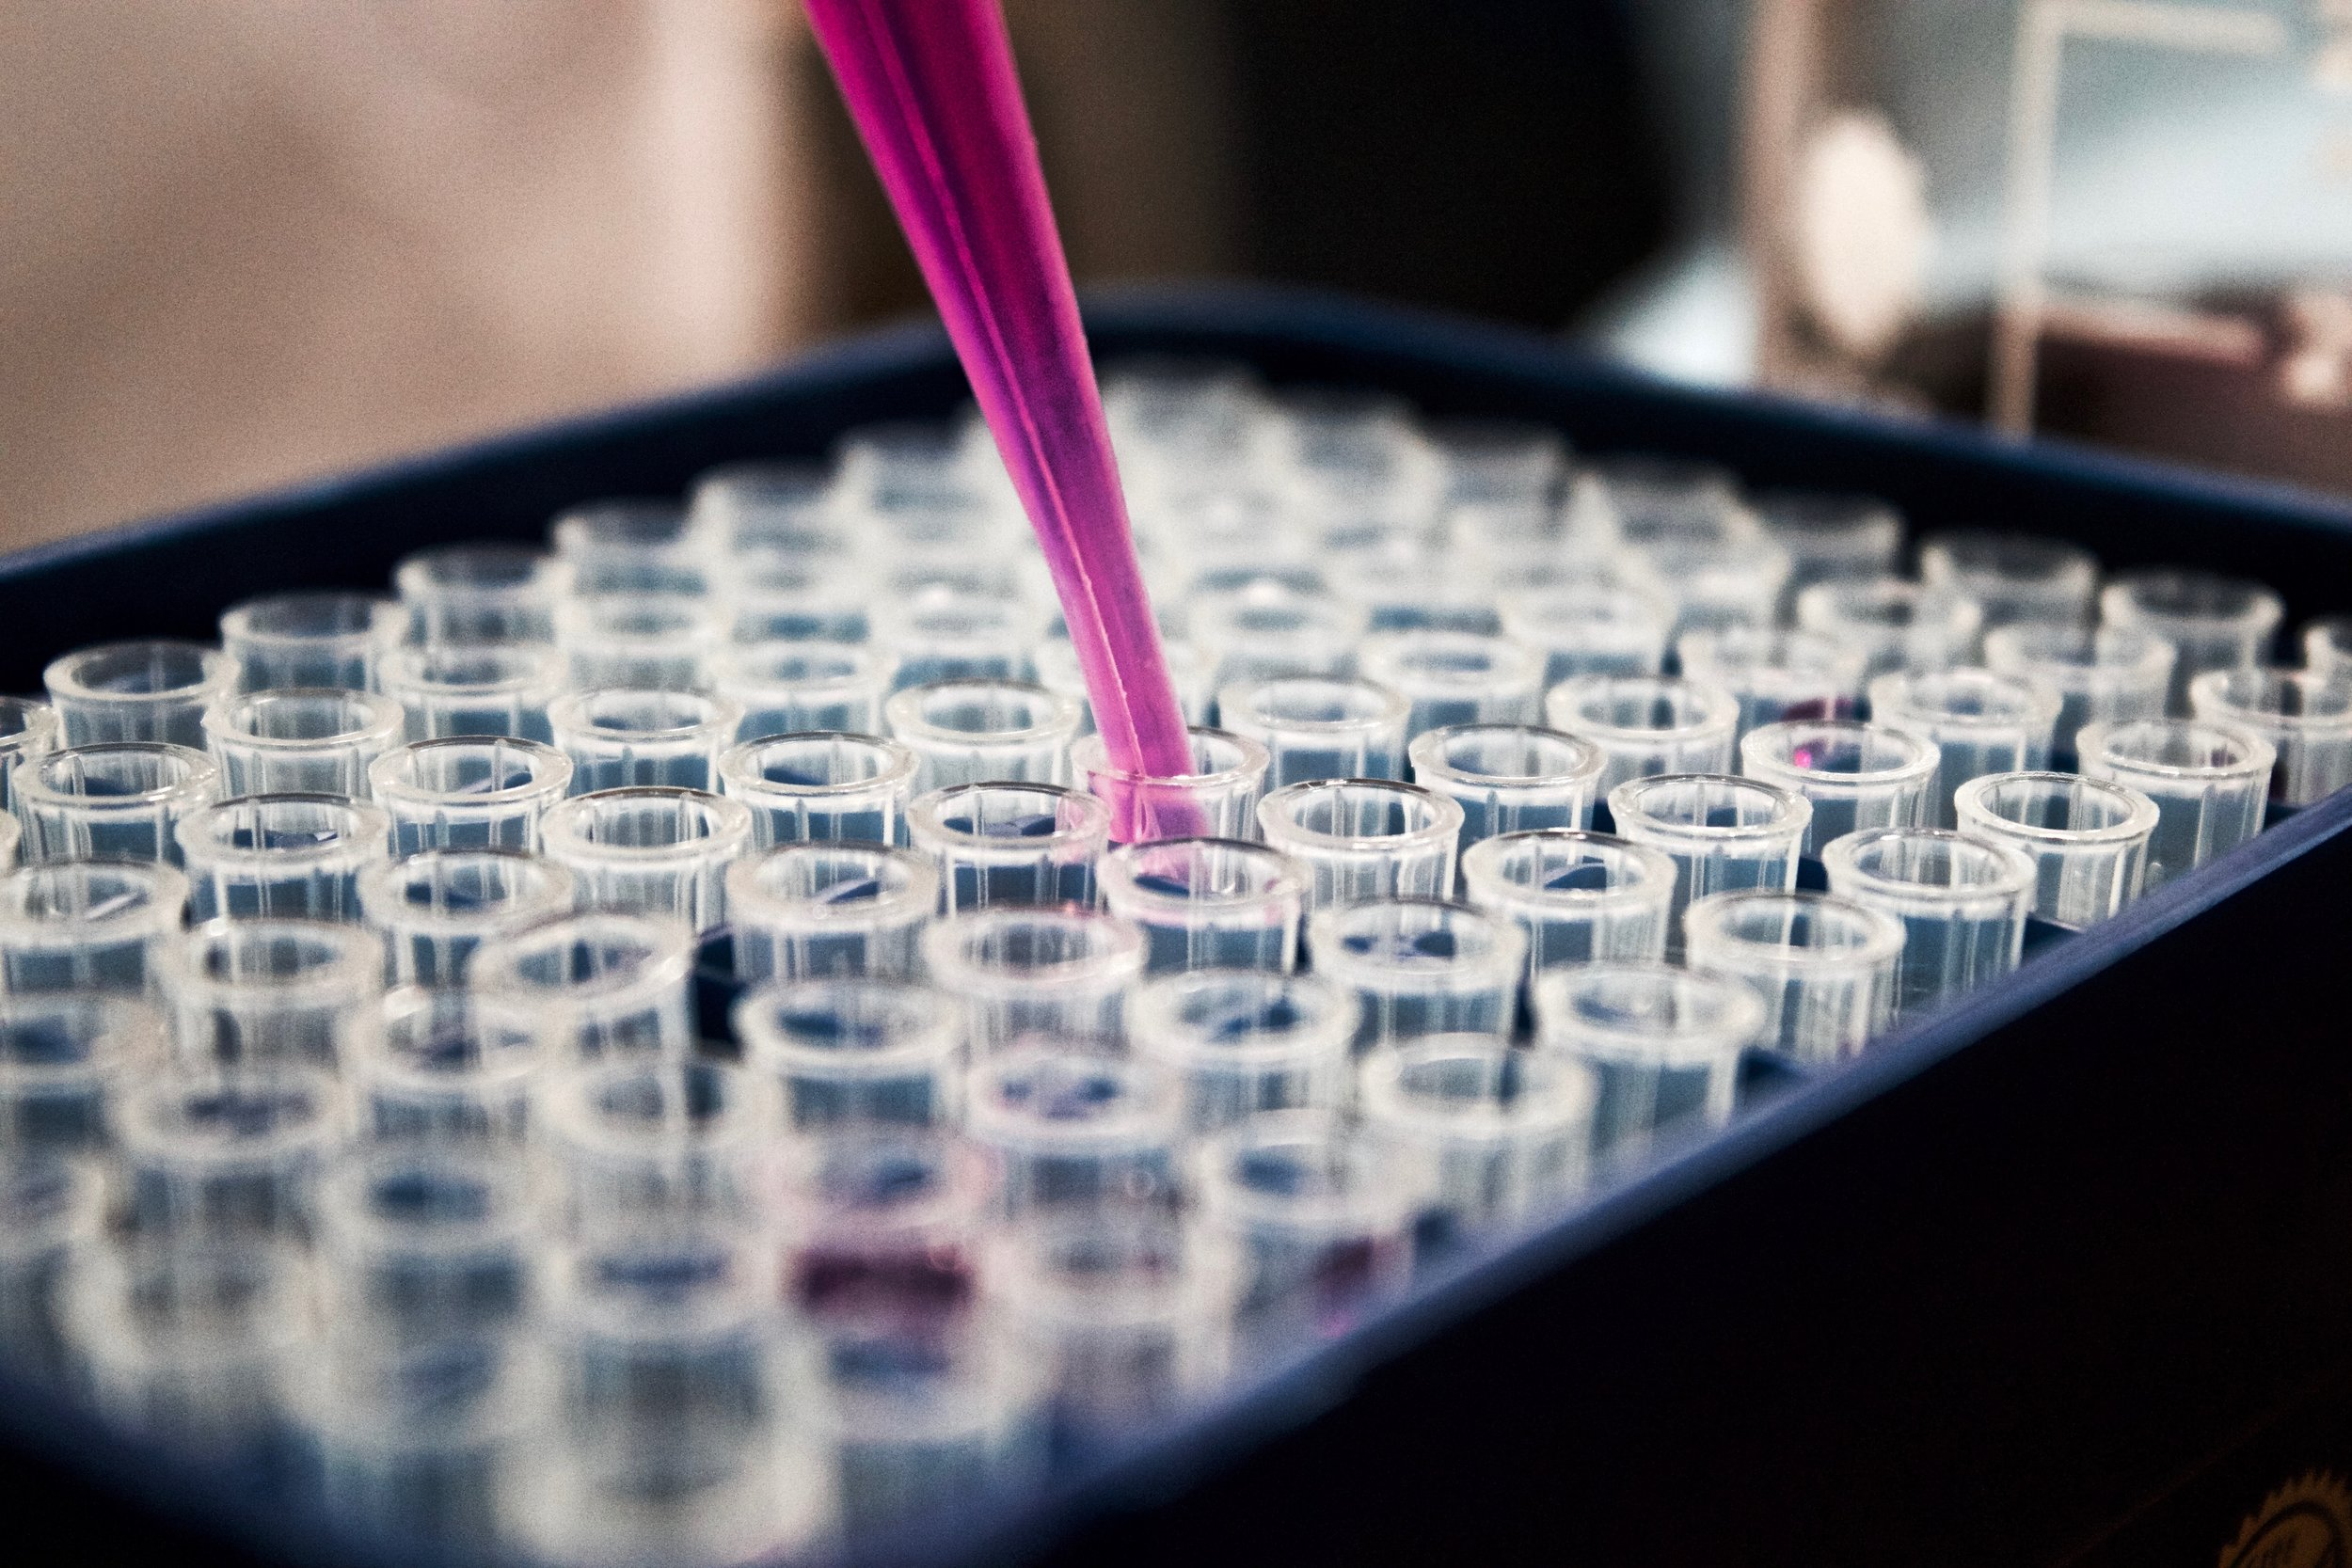 Clear vials being filled with a pink liquid.